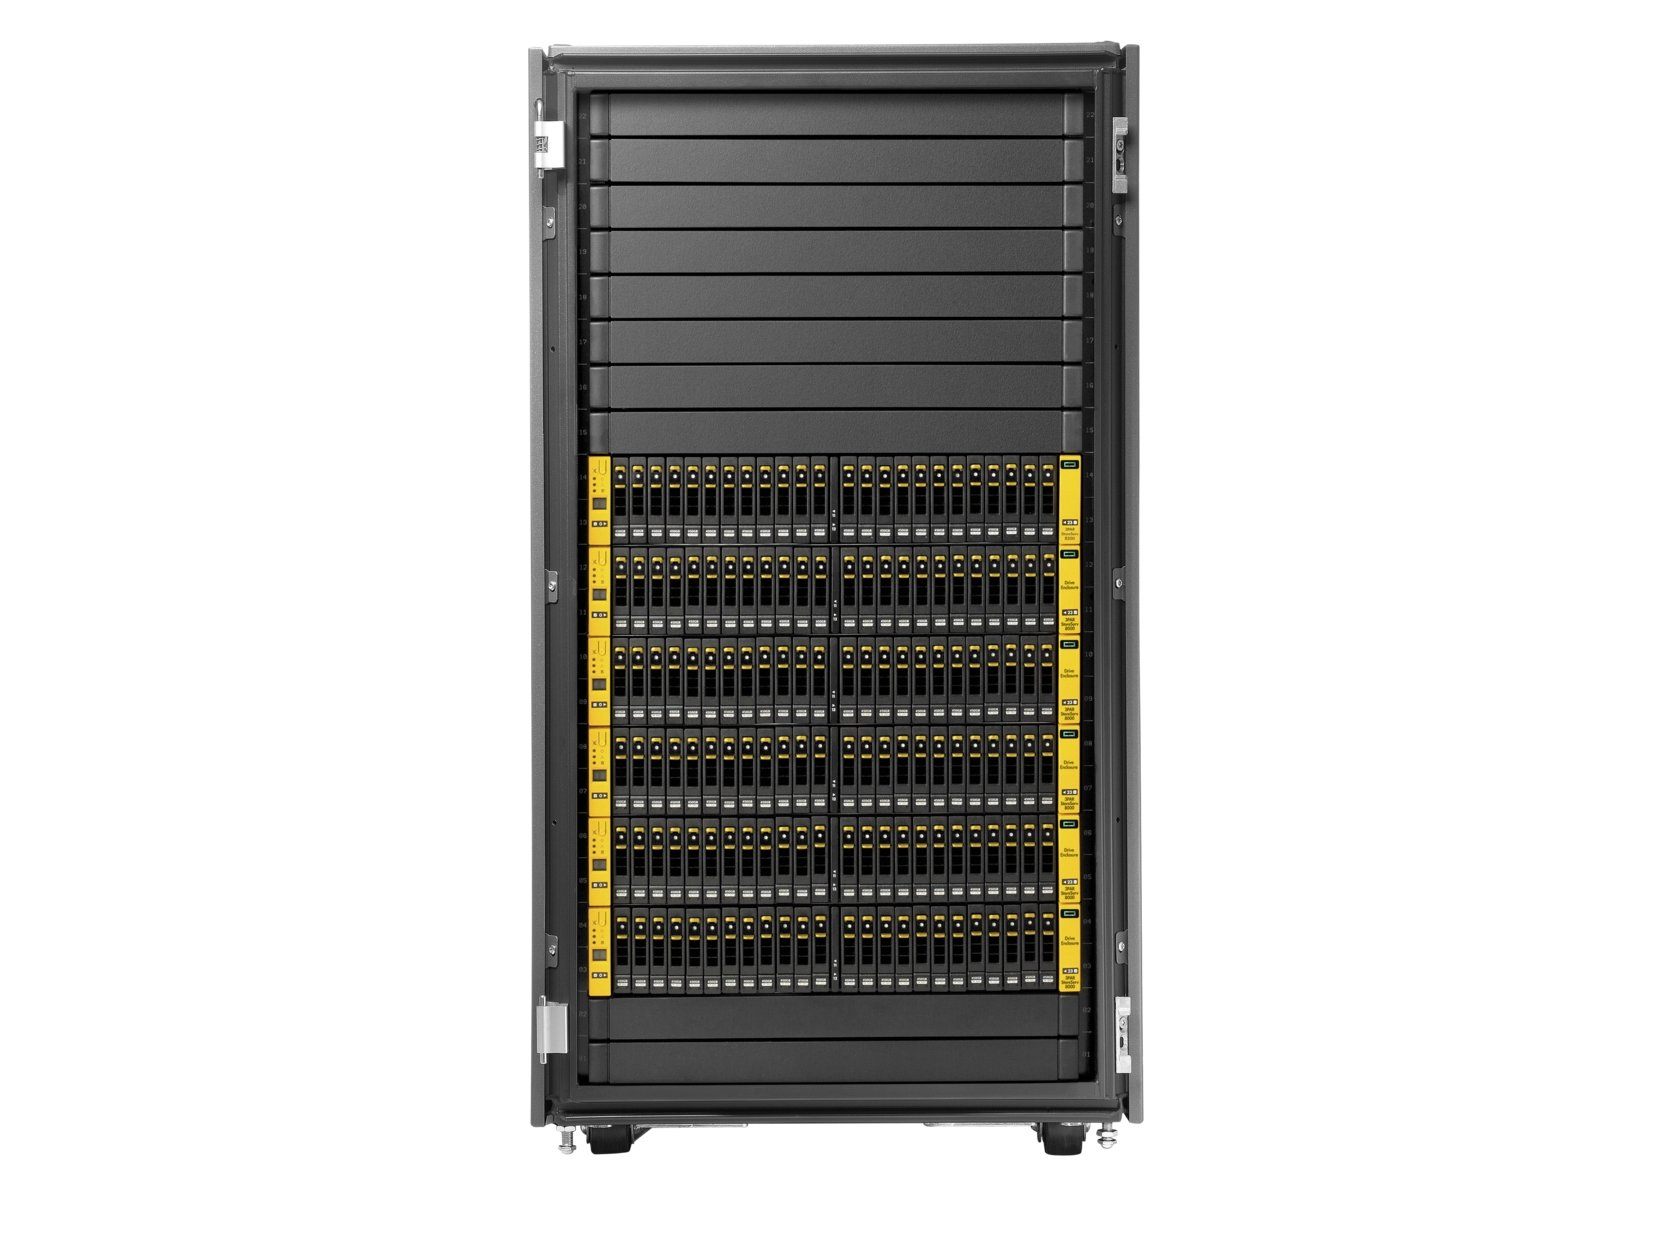 INTCOMEX - Premiere distributor of a wide range of computer